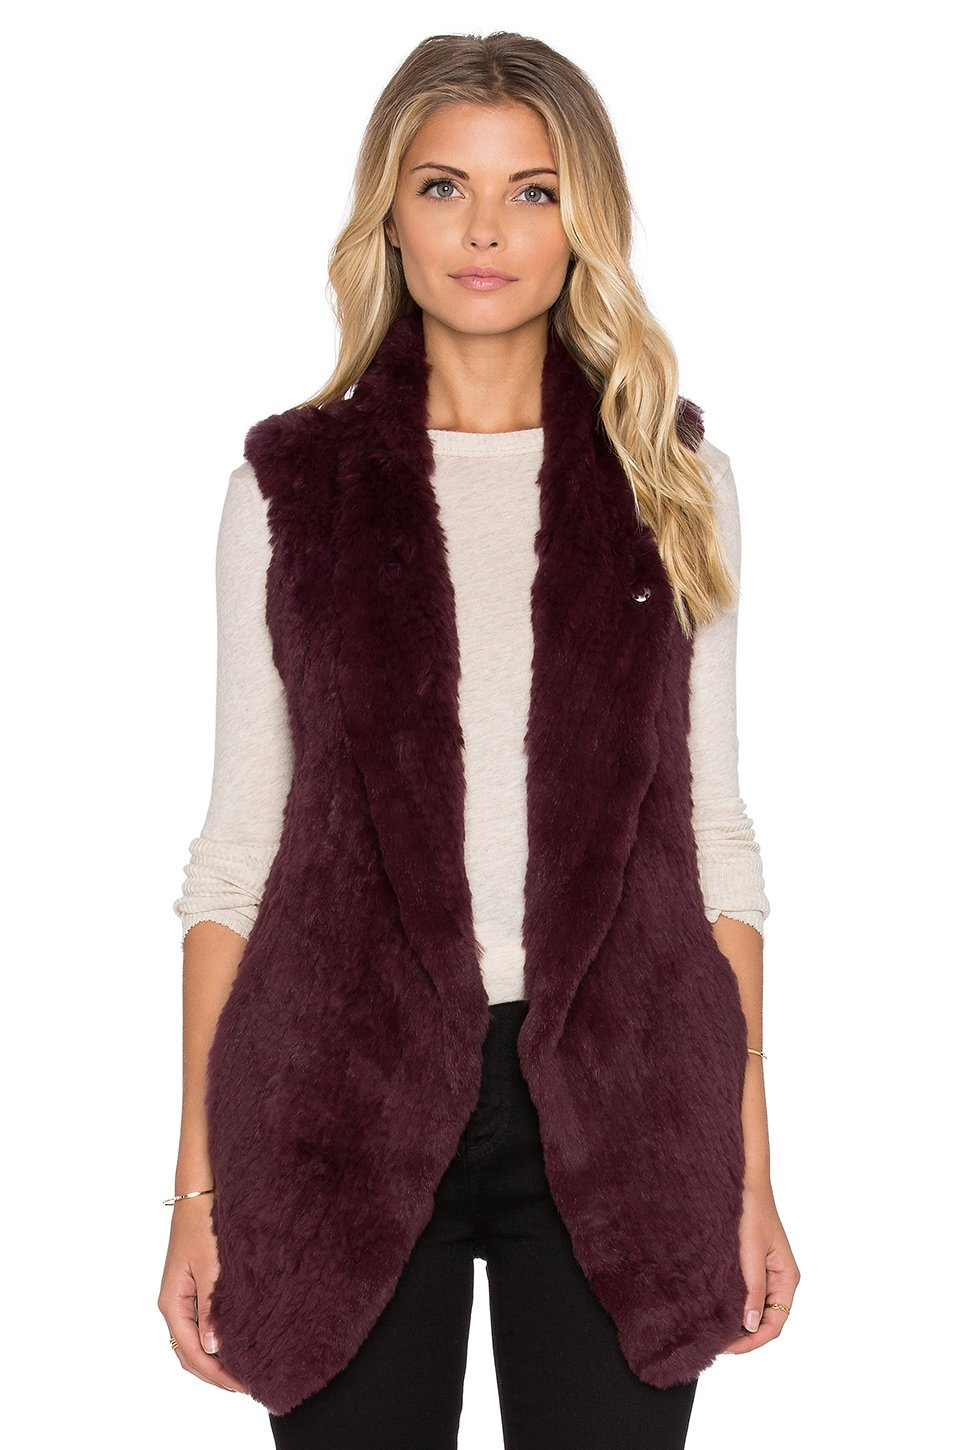 Shop for long fur vest online at Target. Free shipping on purchases over $35 and 5% Off W/ REDcard · Same Day Store Pick-Up · Free Shipping $35+ · Free Returns.